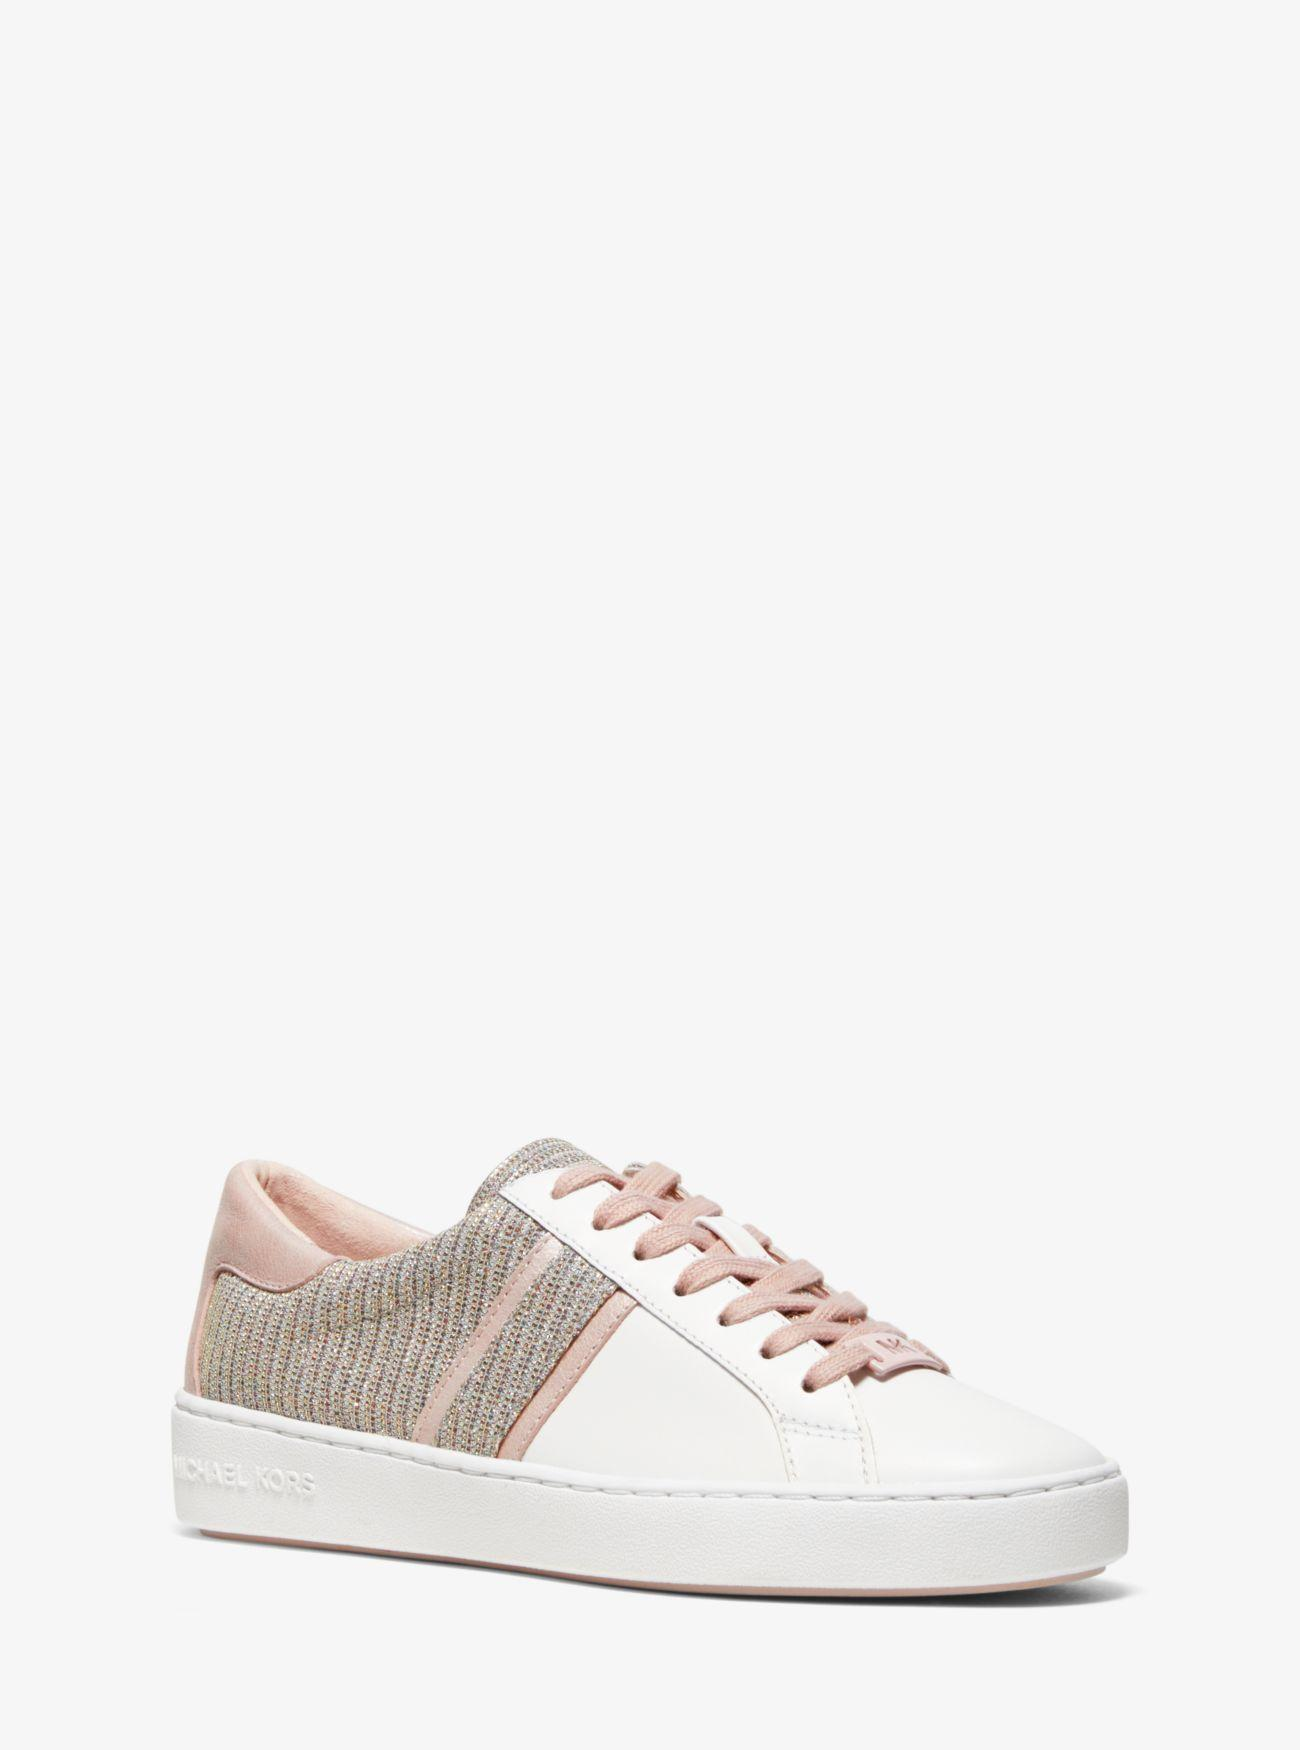 Keaton Chain mesh And Leather Sneaker